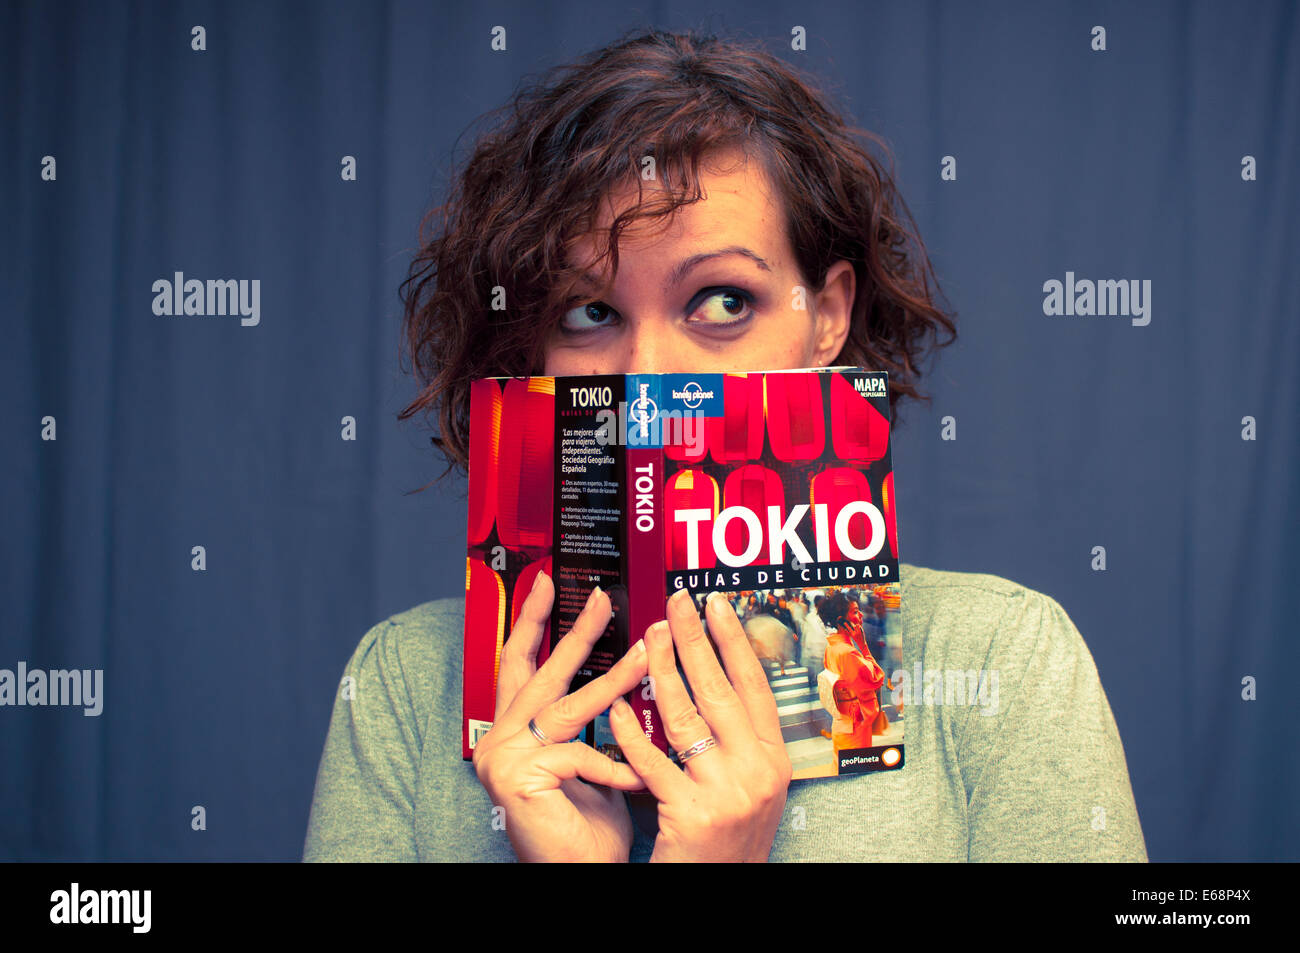 Preparing a trip to Tokyo with travel guides - Stock Image